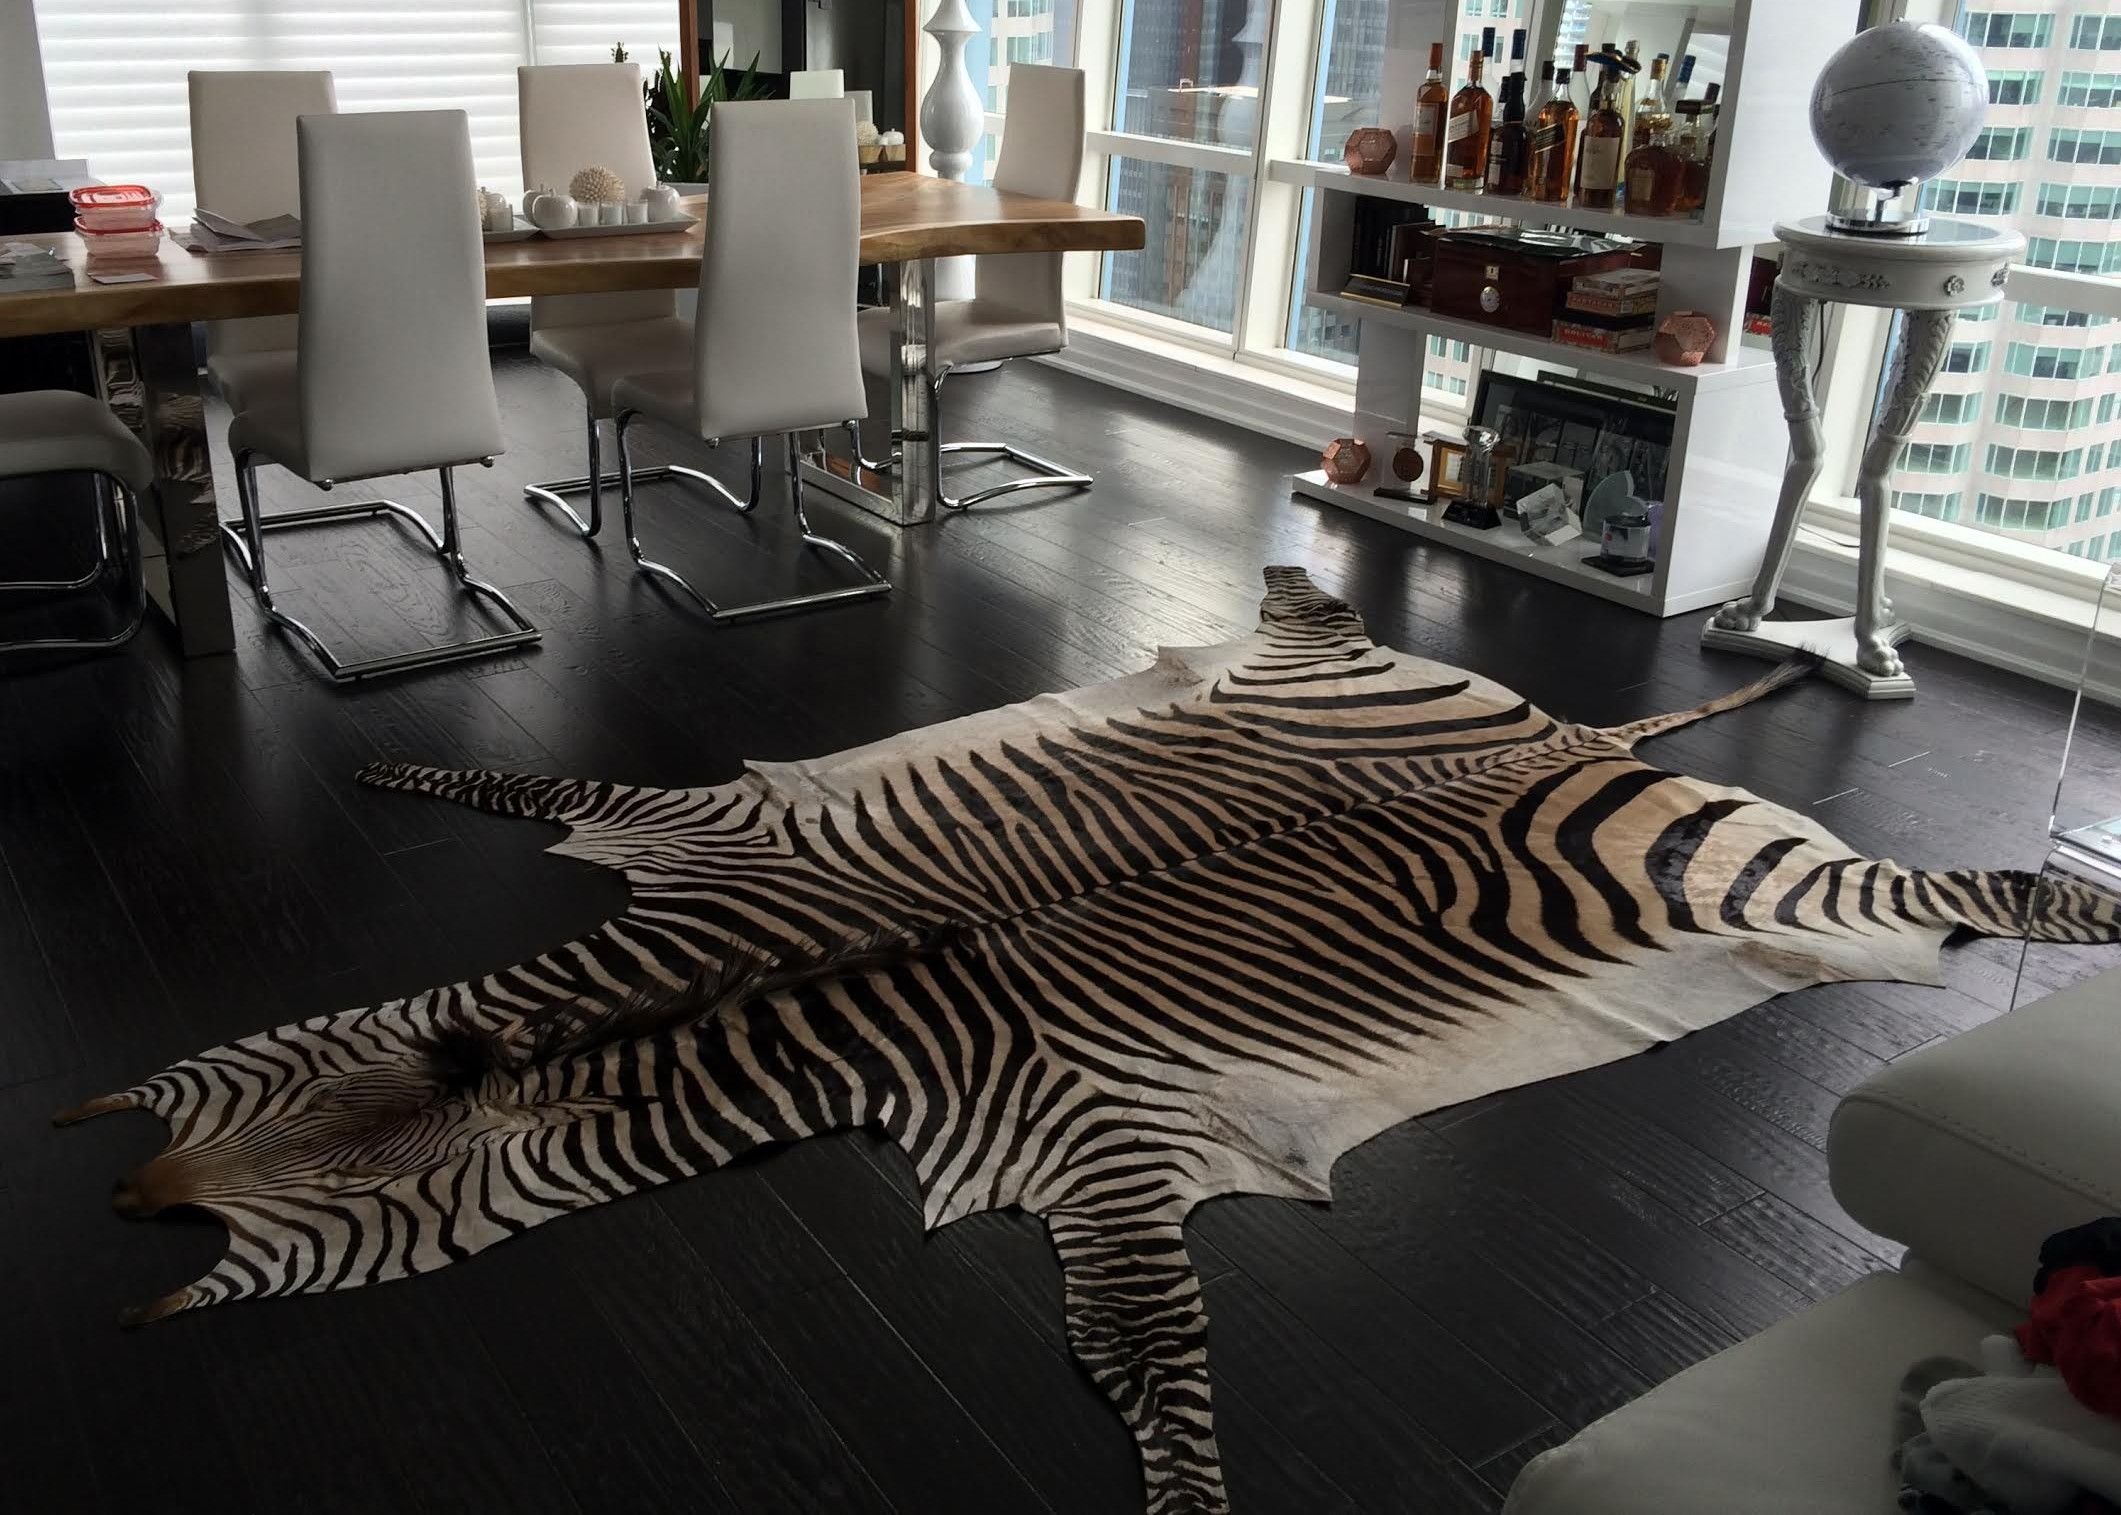 Real Zebra Skin Rug Can Change A Room Thanks To Our Toronto Client For Sharing This Photo With Cowhidesusa